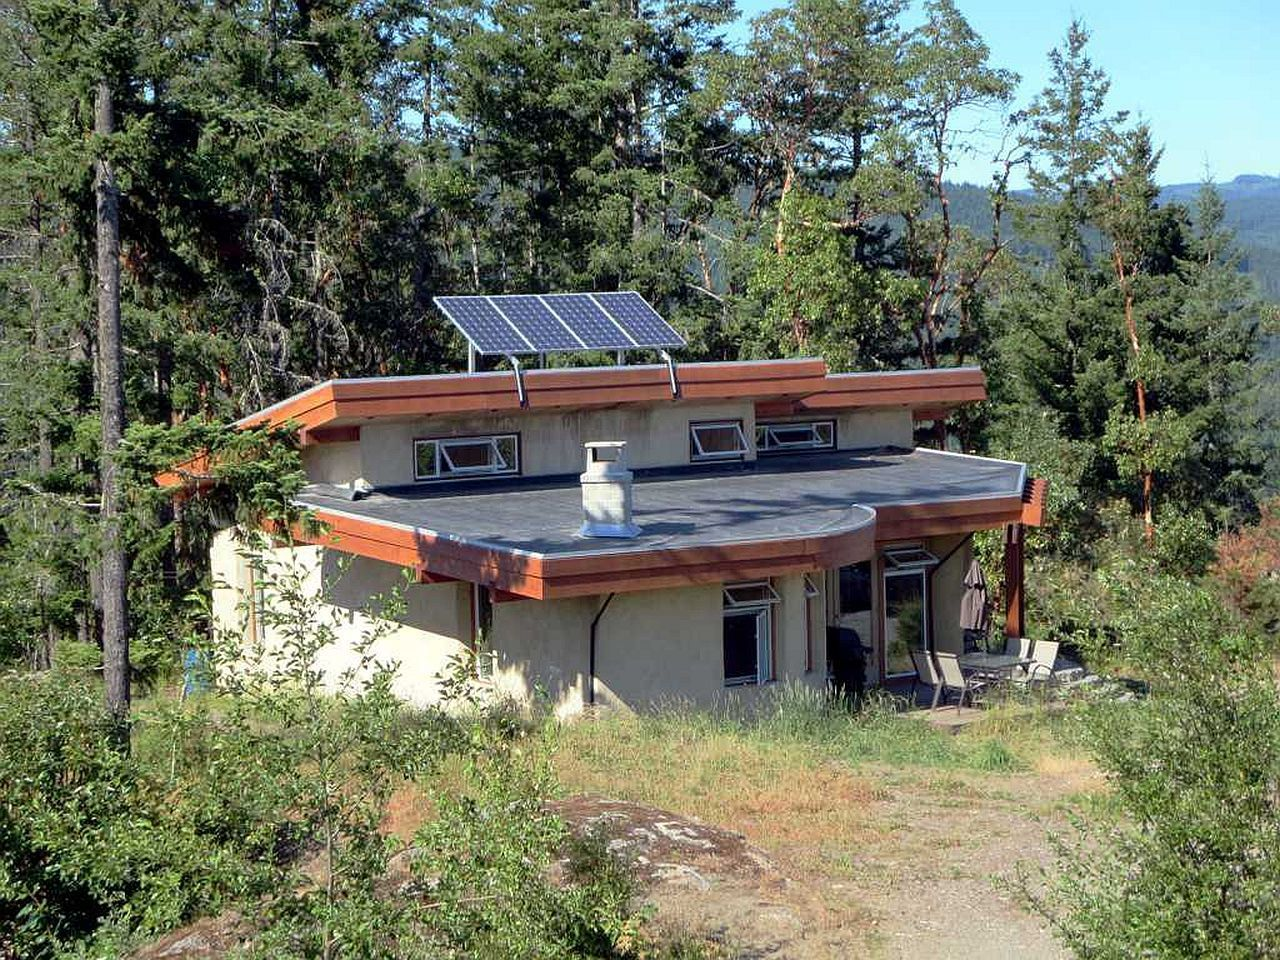 An offgrid cob retreat on a private bluff off grid